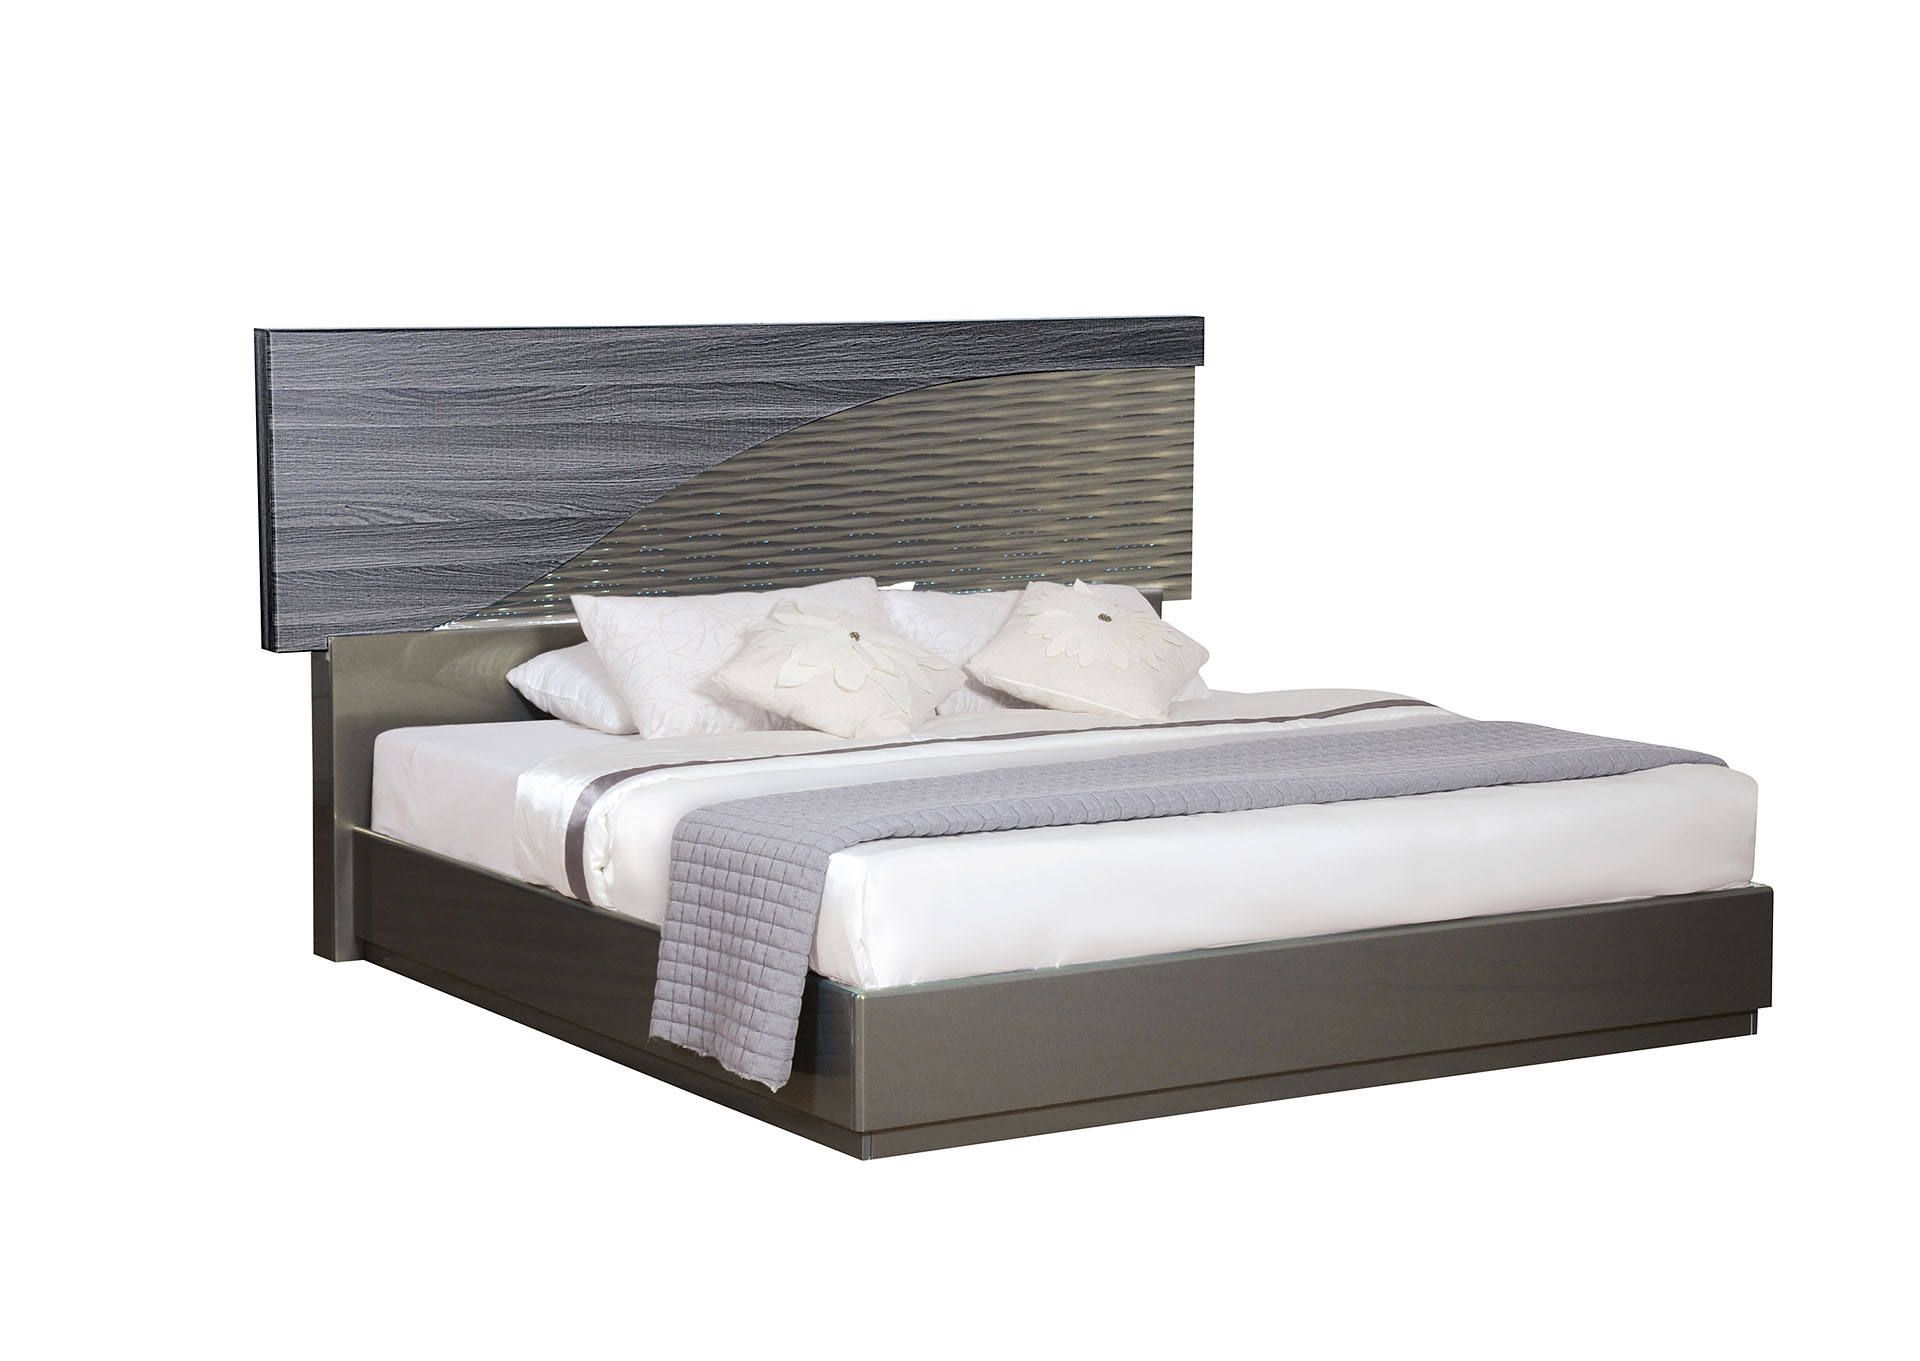 North Gold Queen Bed,Global Furniture USA